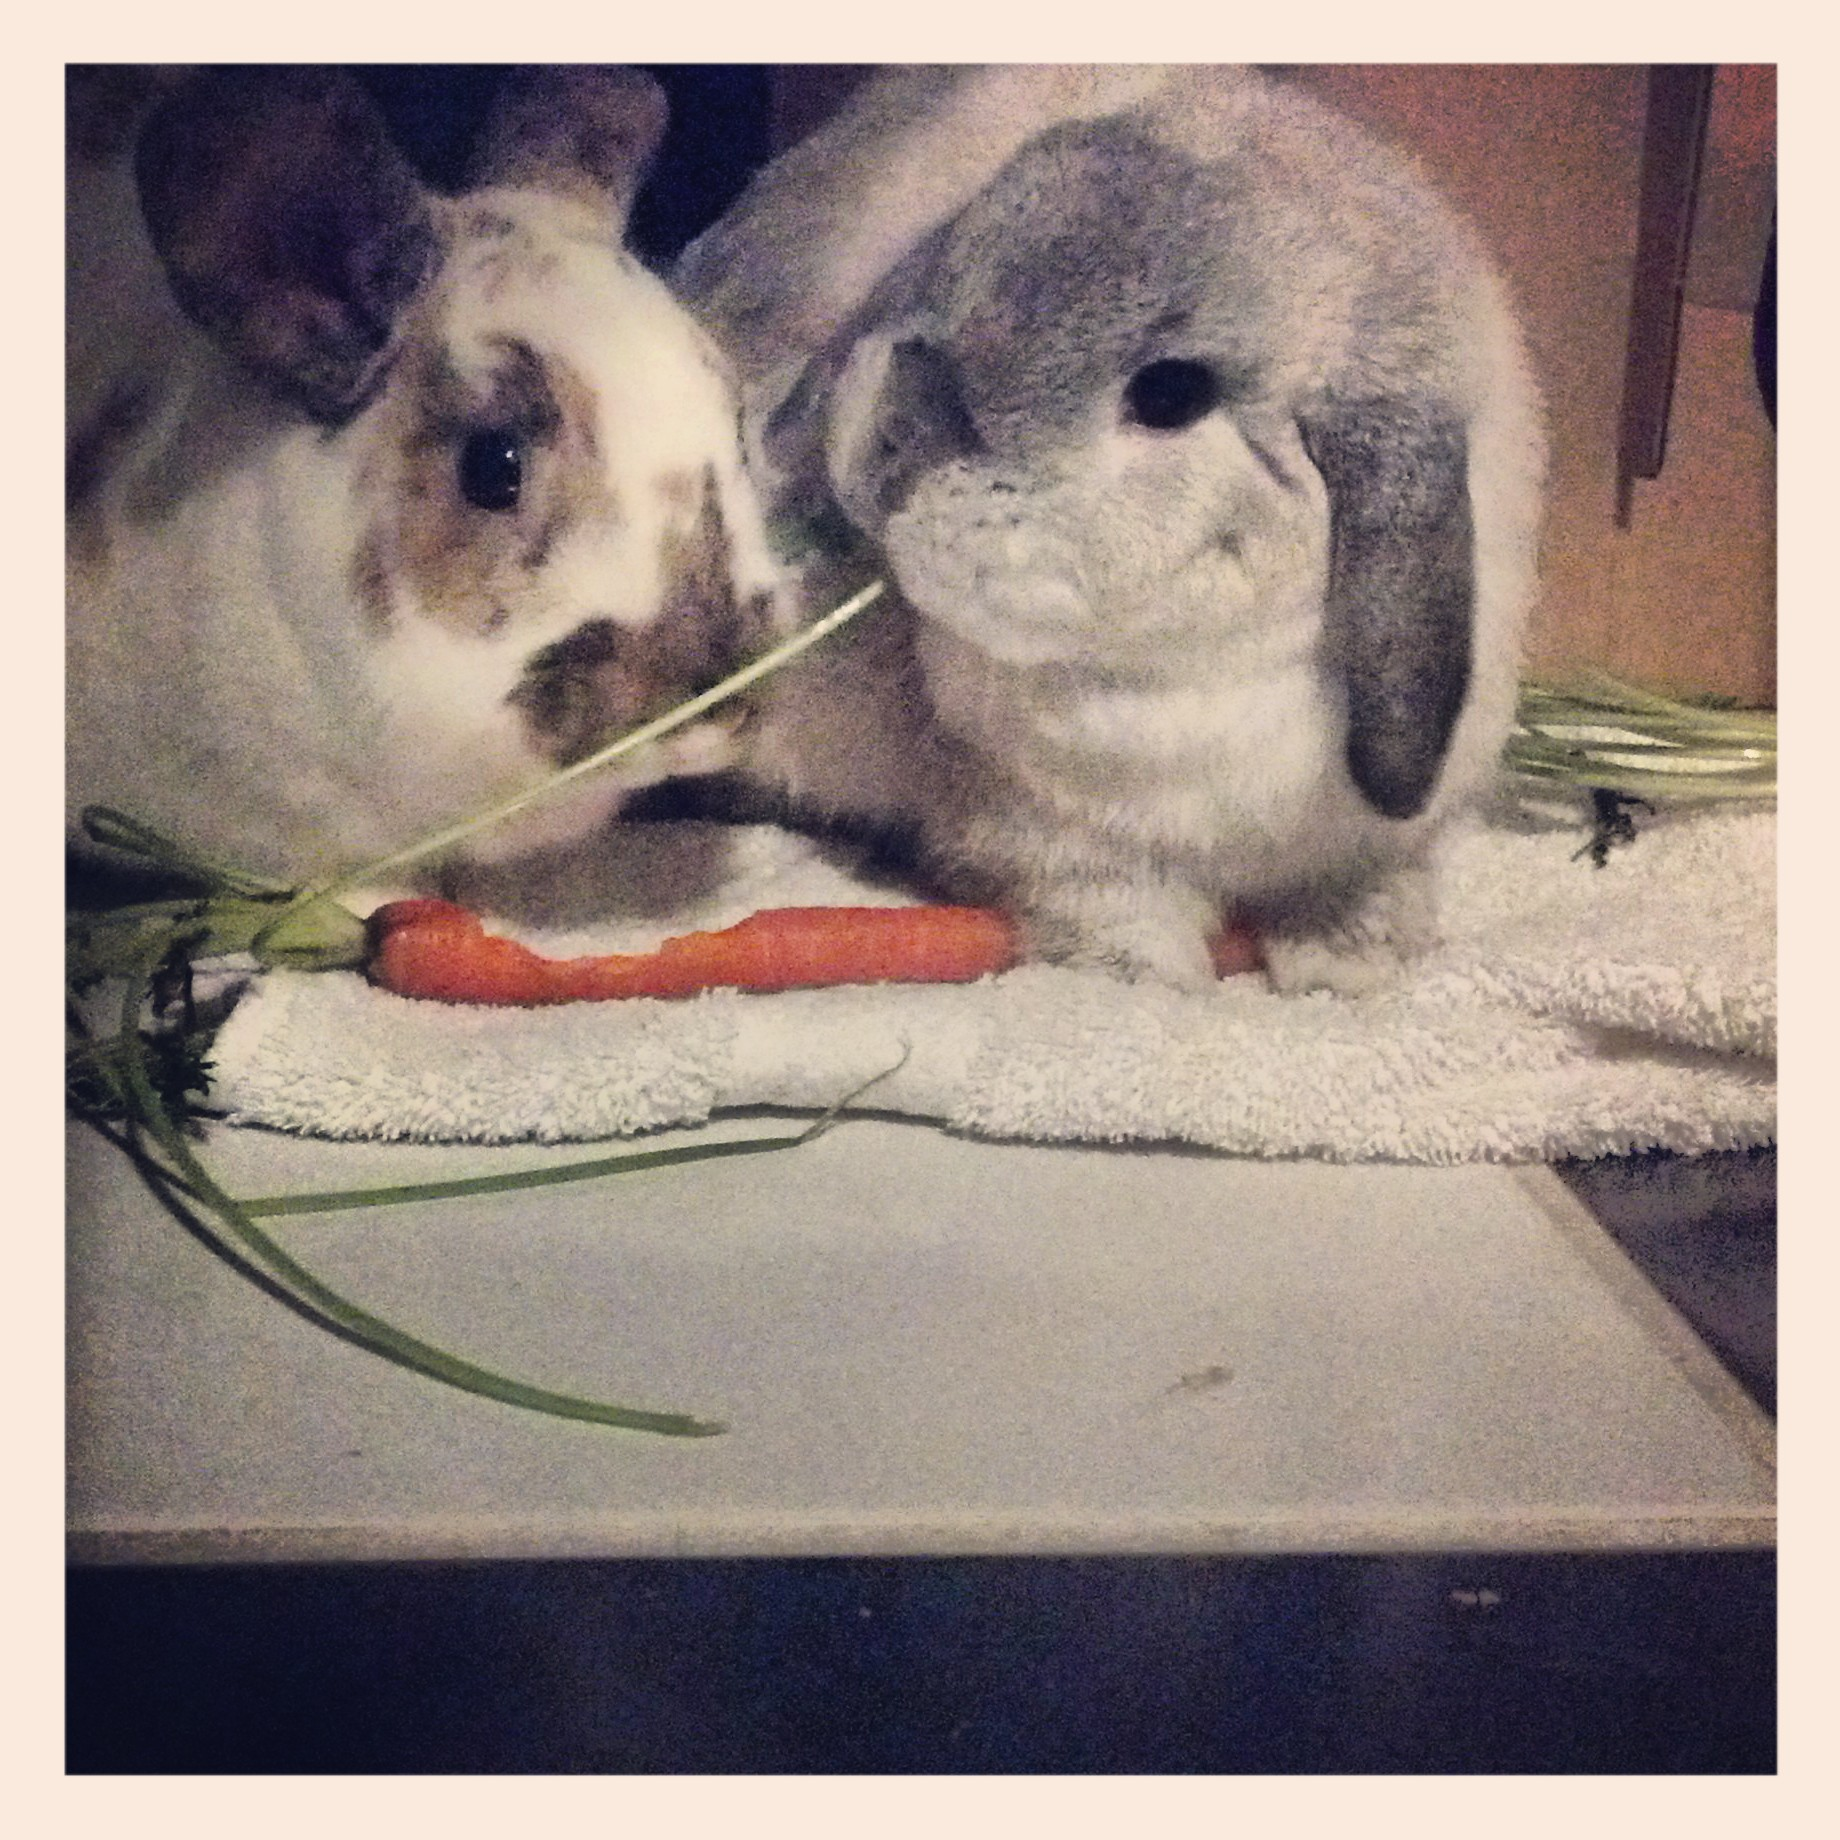 Bunnies Are About to Have a Lady and the Tramp Moment